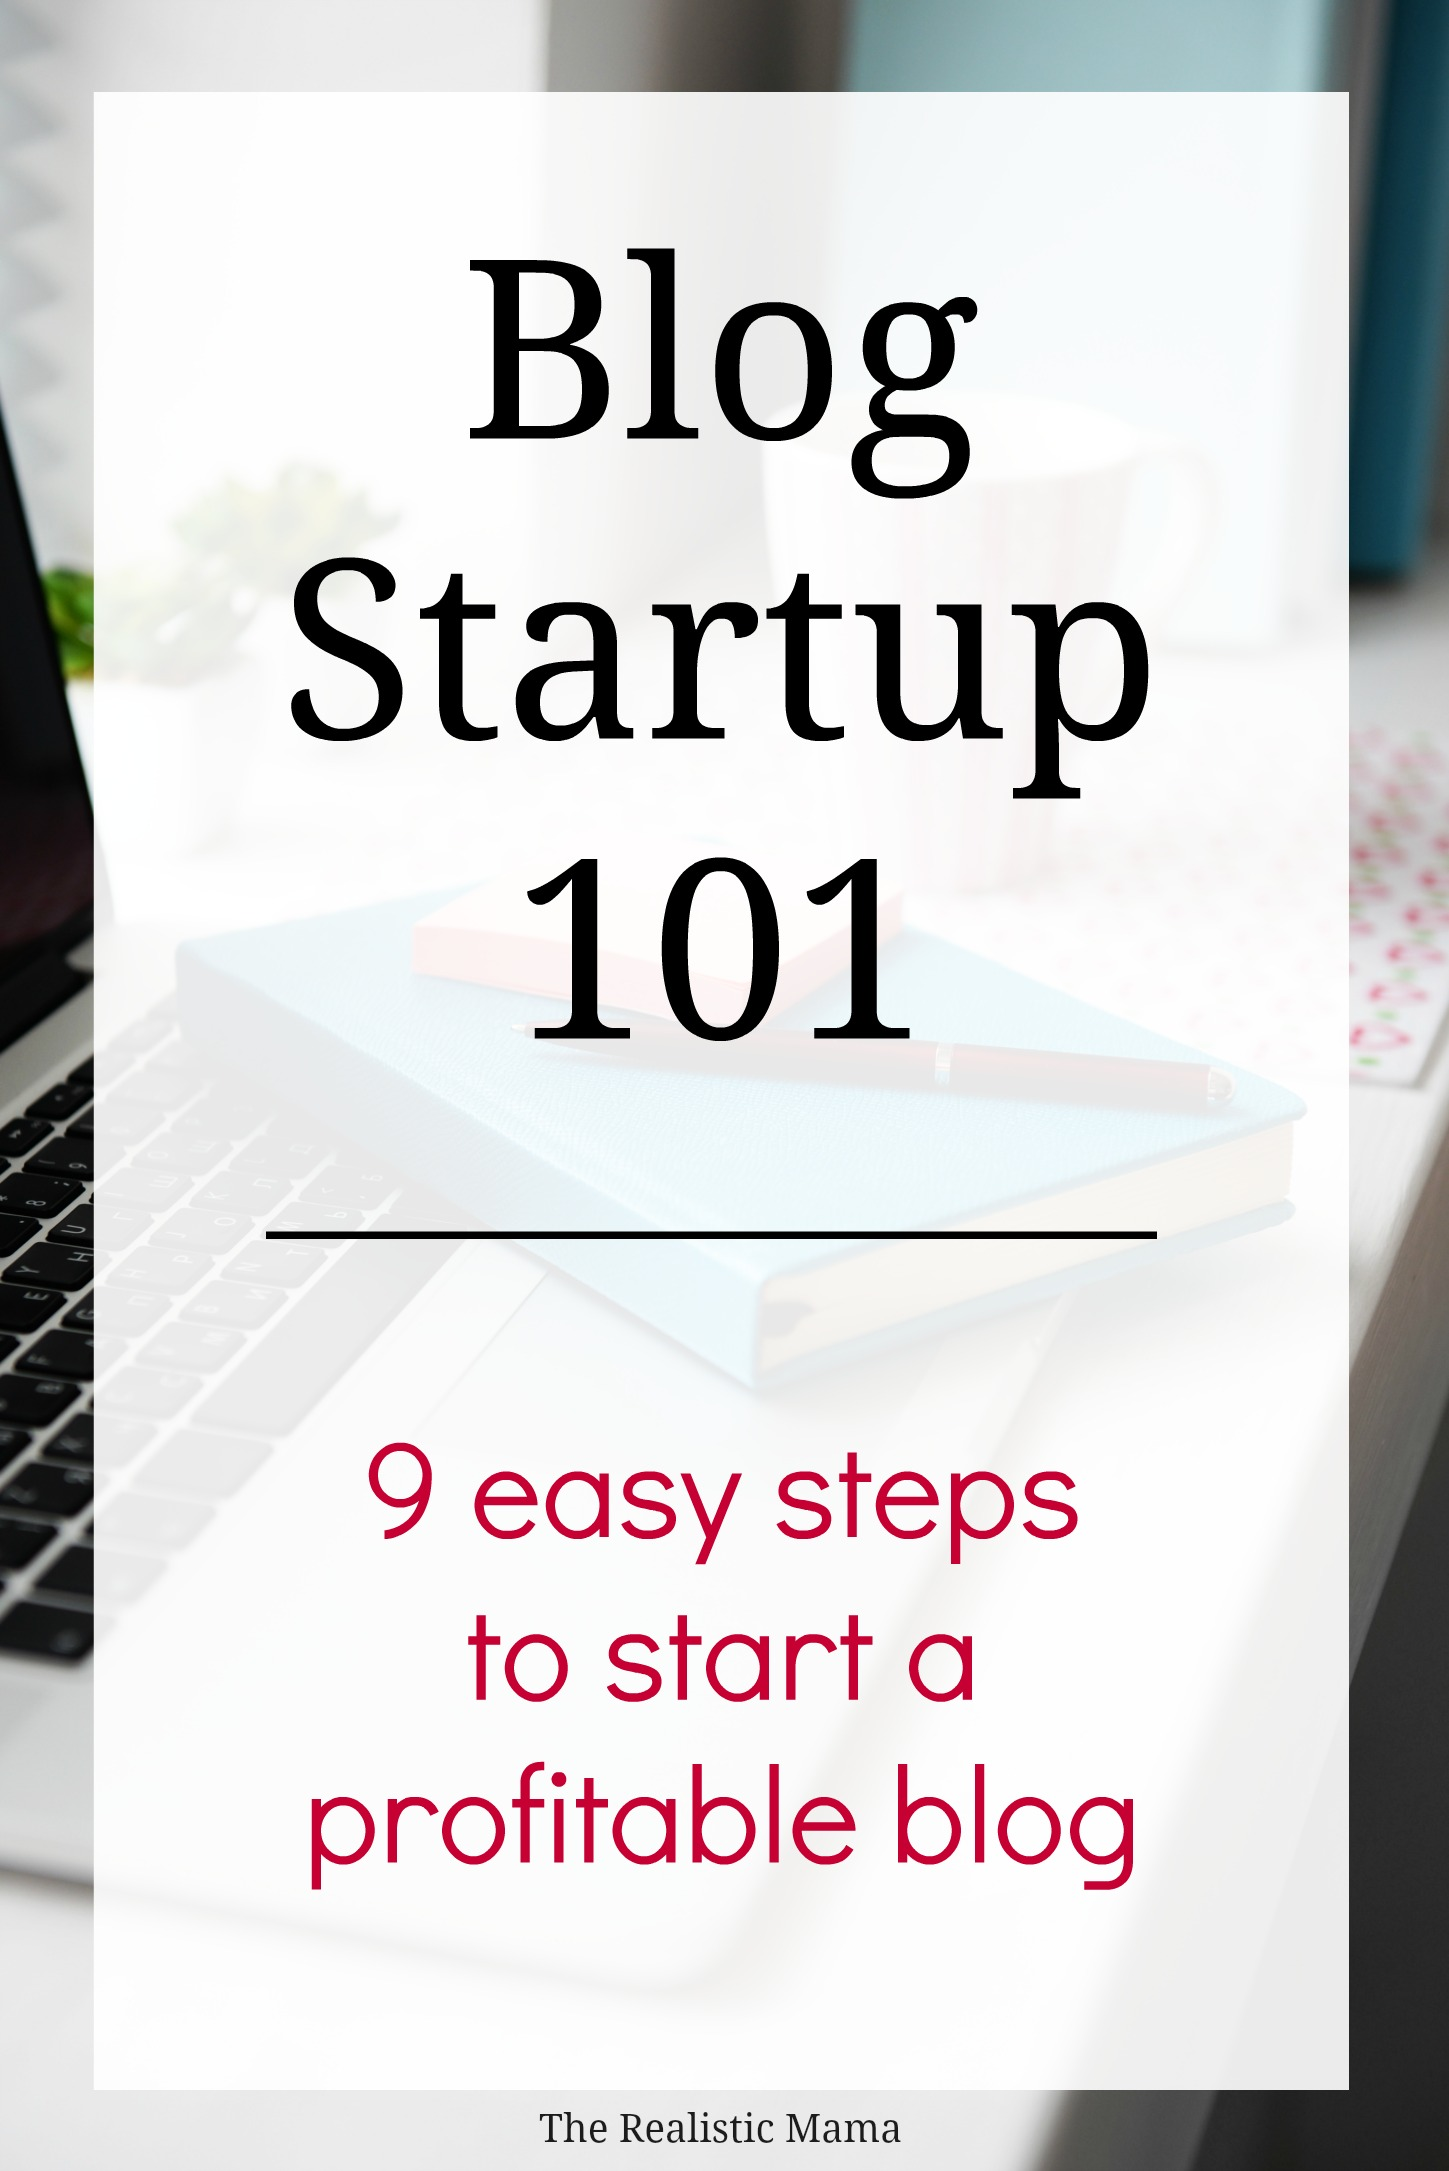 Blog Startup 101 - 9 easy steps to start a profitable blog! Learn what you need to know NOW to start making money right away!